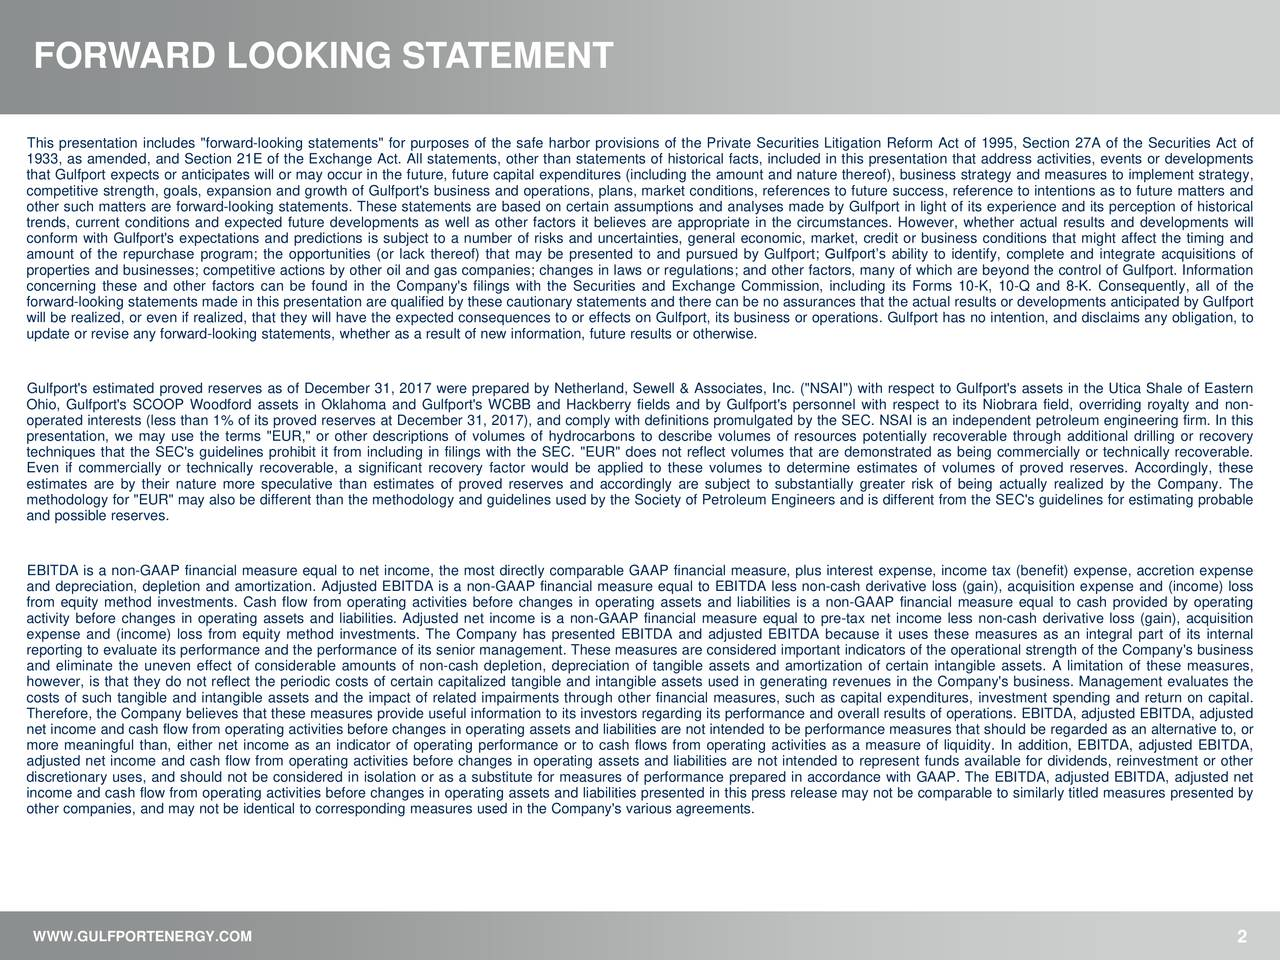 """This presentation includes """"forward-looking statements"""" for purposes of the safe harbor provisions of the Private Securities Litigation Reform Act of 1995, Section 27A of the Securities Act of 1933, as amended, and Section 21E of the Exchange Act. All statements, other than statements of historical facts, included in this presentation that address activities, events or developments that Gulfport expects or anticipates will or may occur in the future, future capital expenditures (including the amount and nature thereof), business strategy and measures to implement strategy, competitive strength, goals, expansion and growth of Gulfport's business and operations, plans, market conditions, references to future success, reference to intentions as to future matters and other such matters are forward-looking statements. These statements are based on certain assumptions and analyses made by Gulfport in light of its experience and its perception of historical trends, current conditions and expected future developments as well as other factors it believes are appropriate in the circumstances. However, whether actual results and developments will conform with Gulfport's expectations and predictions is subject to a number of risks and uncertainties, general economic, market, credit or business conditions that might affect the timing and amount of the repurchase program; the opportunities (or lack thereof) that may be presented to and pursued by Gulfport; Gulfport's ability to identify, complete and integrate acquisitions of properties and businesses; competitive actions by other oil and gas companies; changes in laws or regulations; and other factors, many of which are beyond the control of Gulfport. Information concerning these and other factors can be found in the Company's filings with the Securities and Exchange Commission, including its Forms 10-K, 10-Q and 8-K. Consequently, all of the forward-looking statements made in this presentation are qualified by these cautionary """